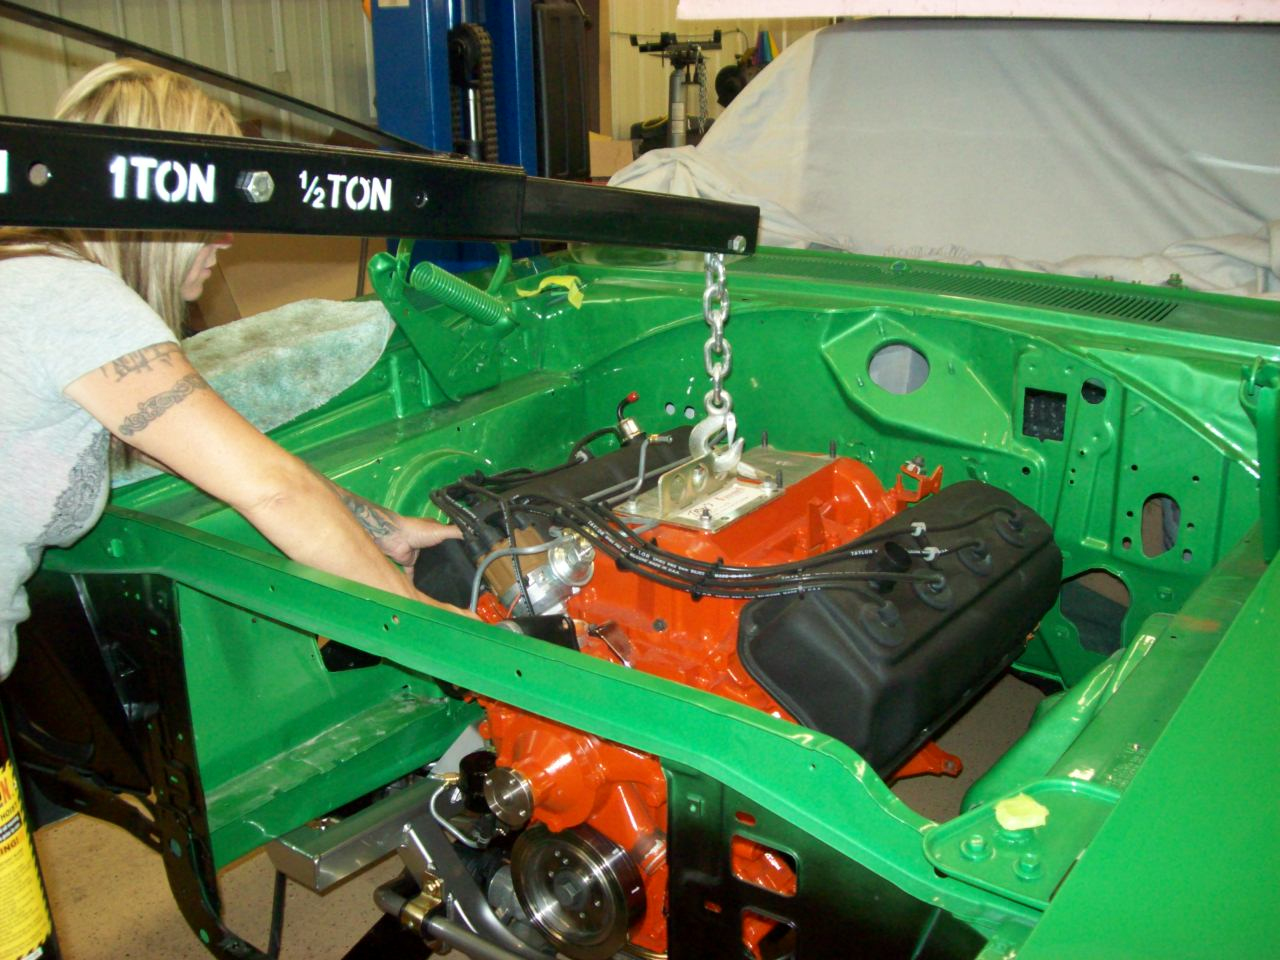 The R/T Garage Project Gallery - Mopar Restoration and